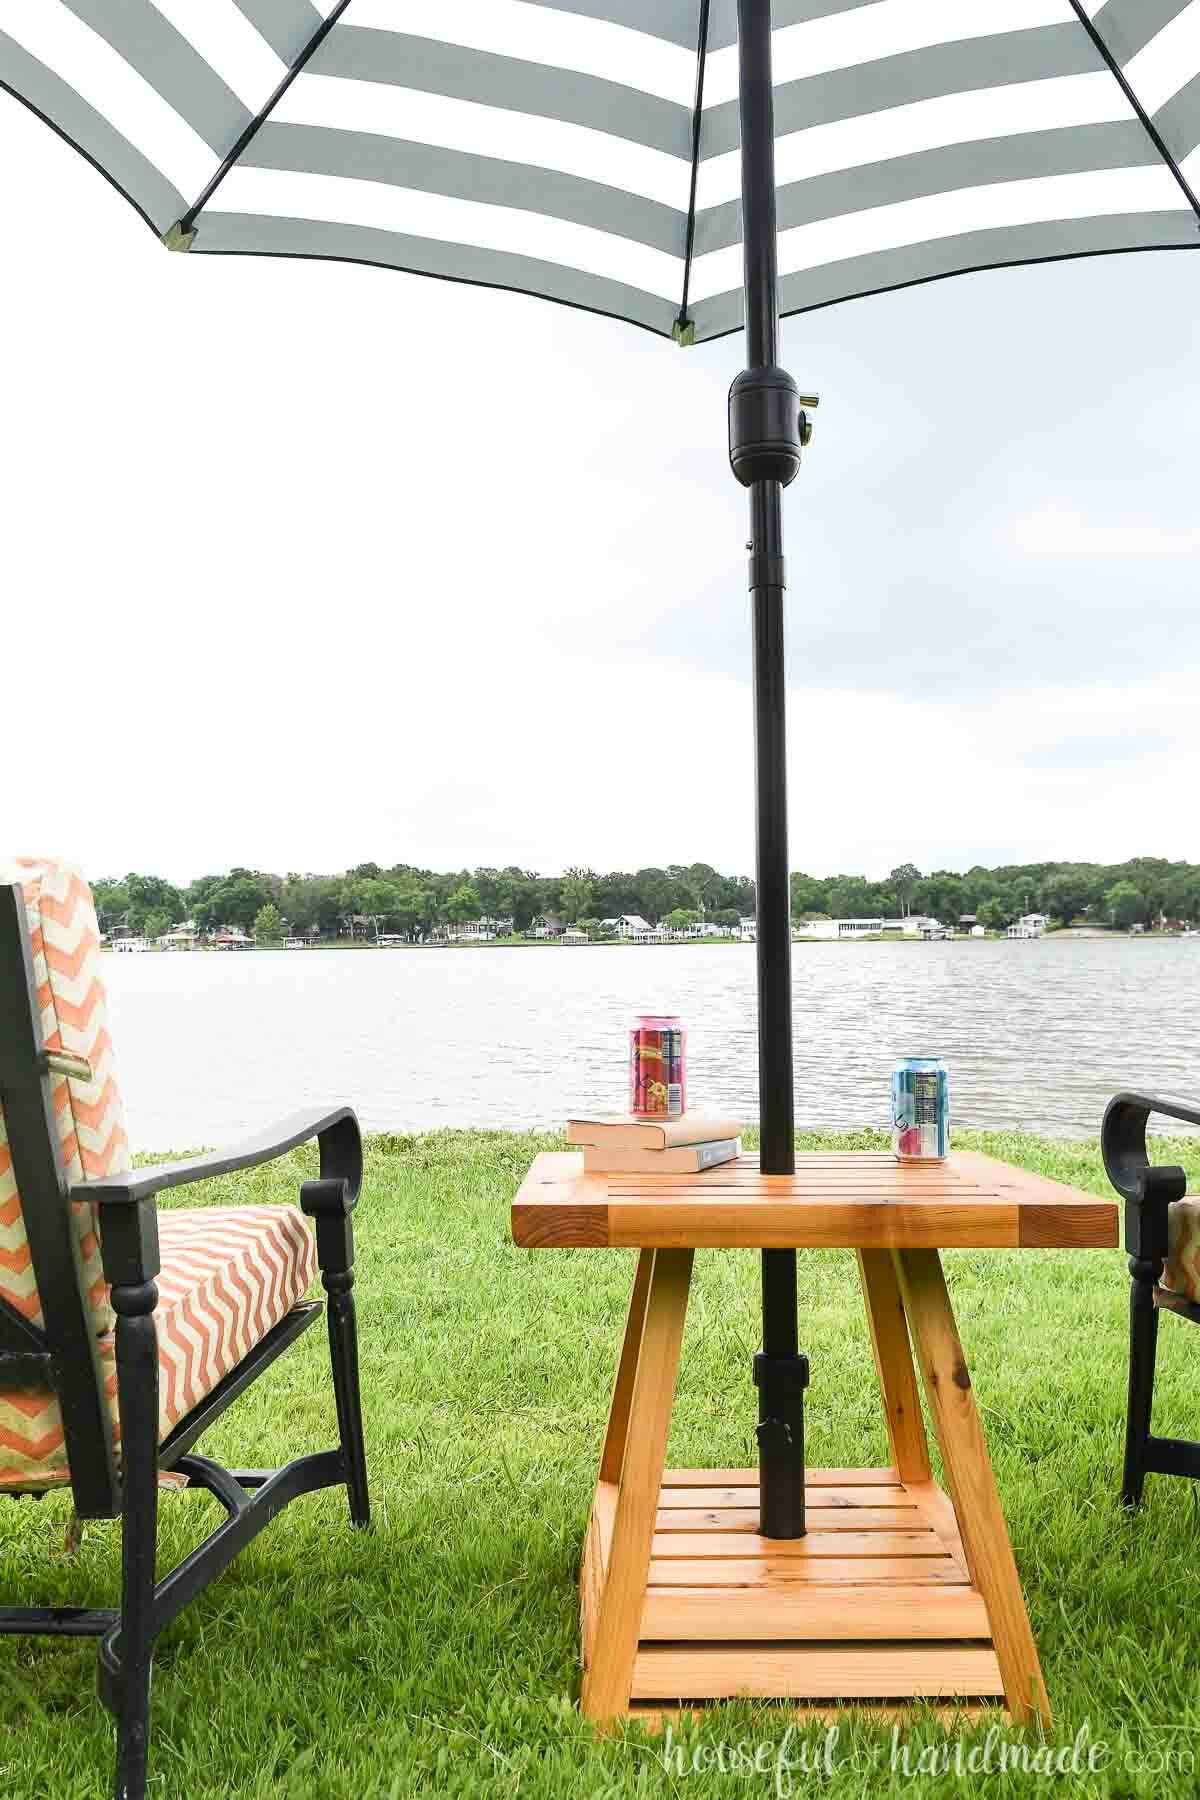 Umbrella side table with a black and white striped umbrella in it next to black frame outdoor chairs in front of a lake.